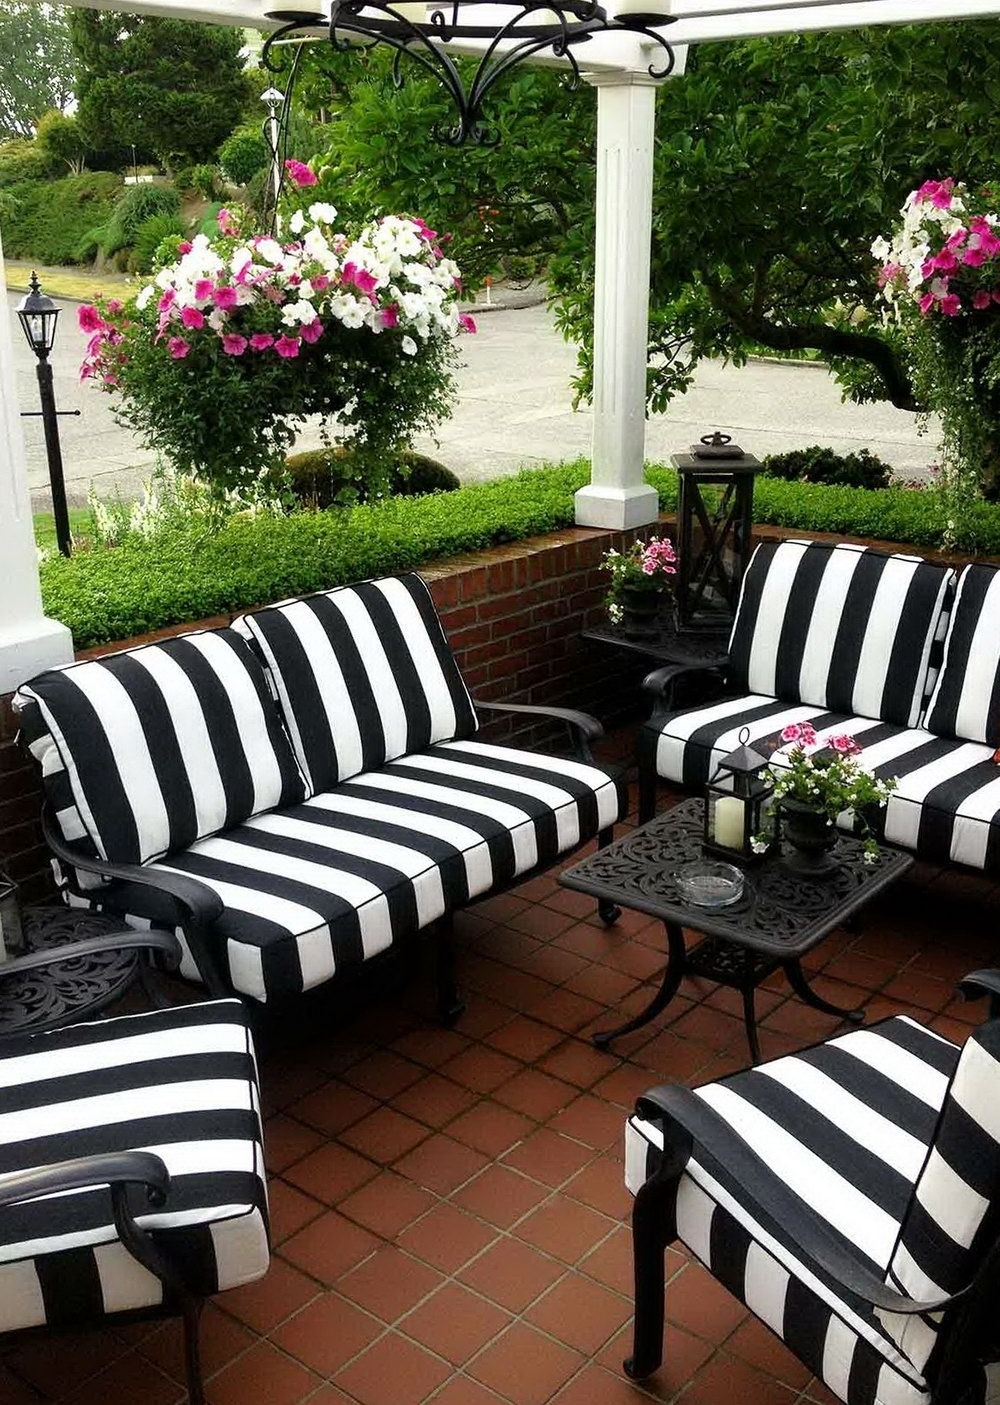 Widely Used Black And White Striped Patio Cushions (View 19 of 20)